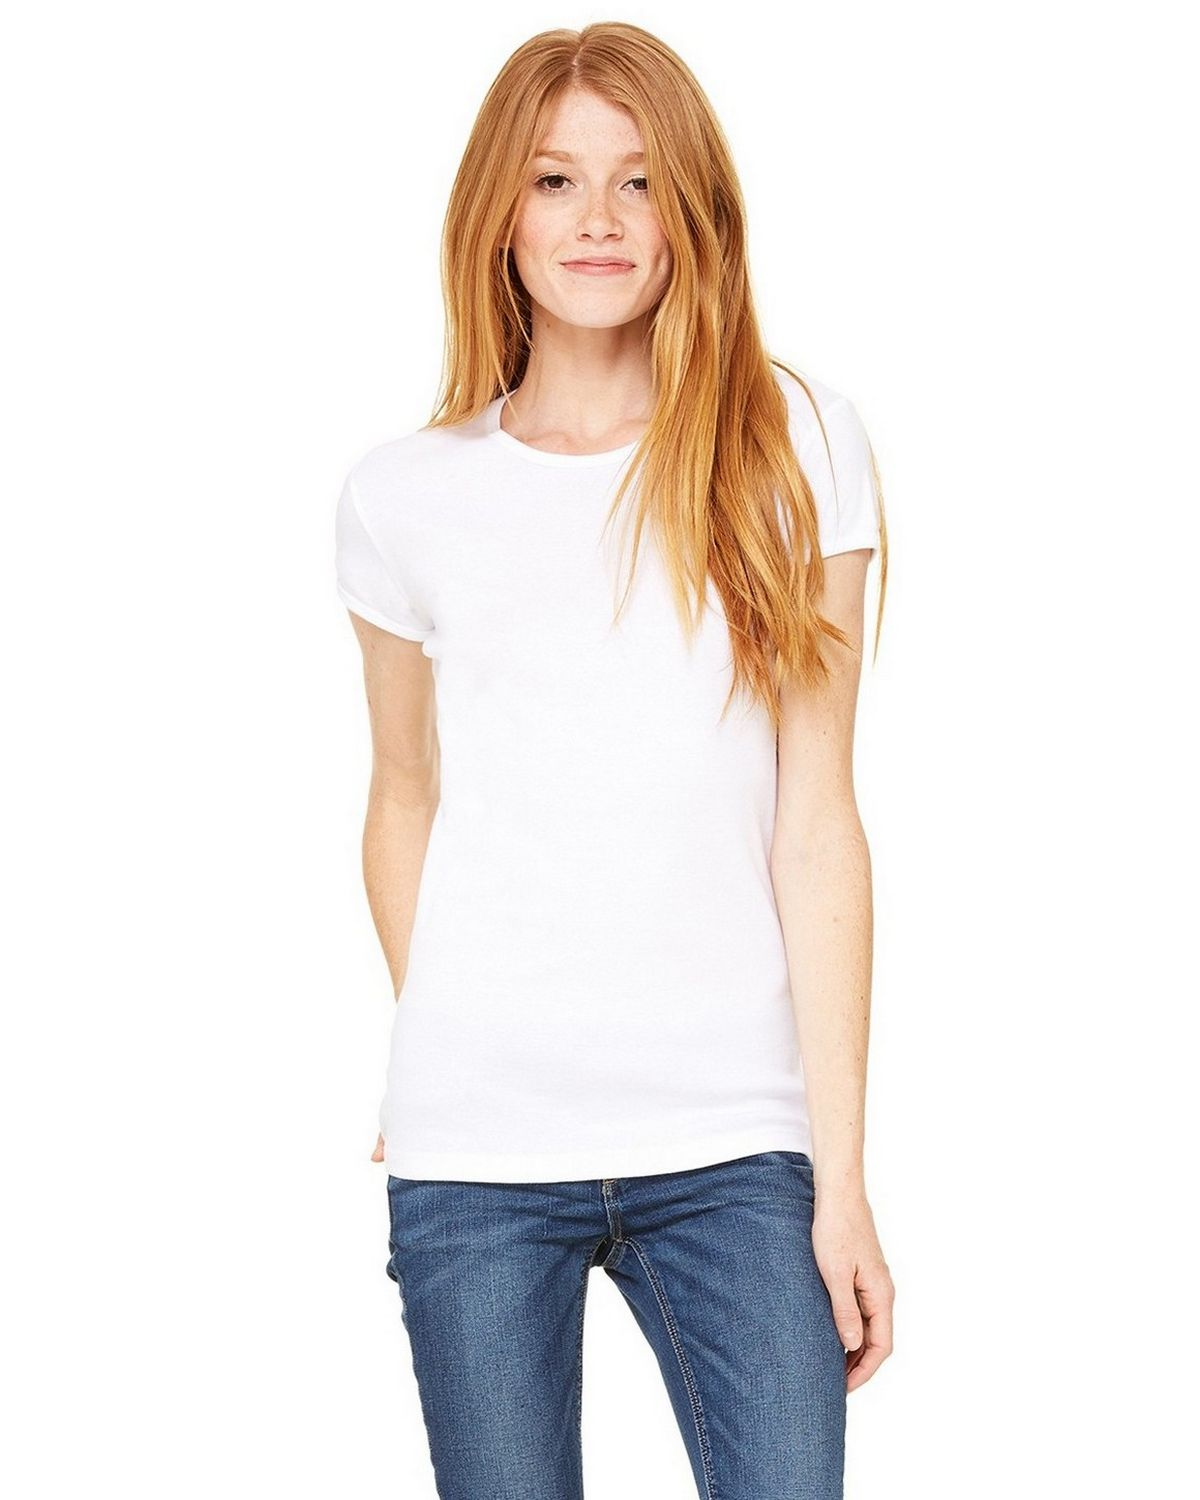 Bella + Canvas 1001 Ladies Stretch Rib Short-Sleeve T-Shirt - White - M 1001